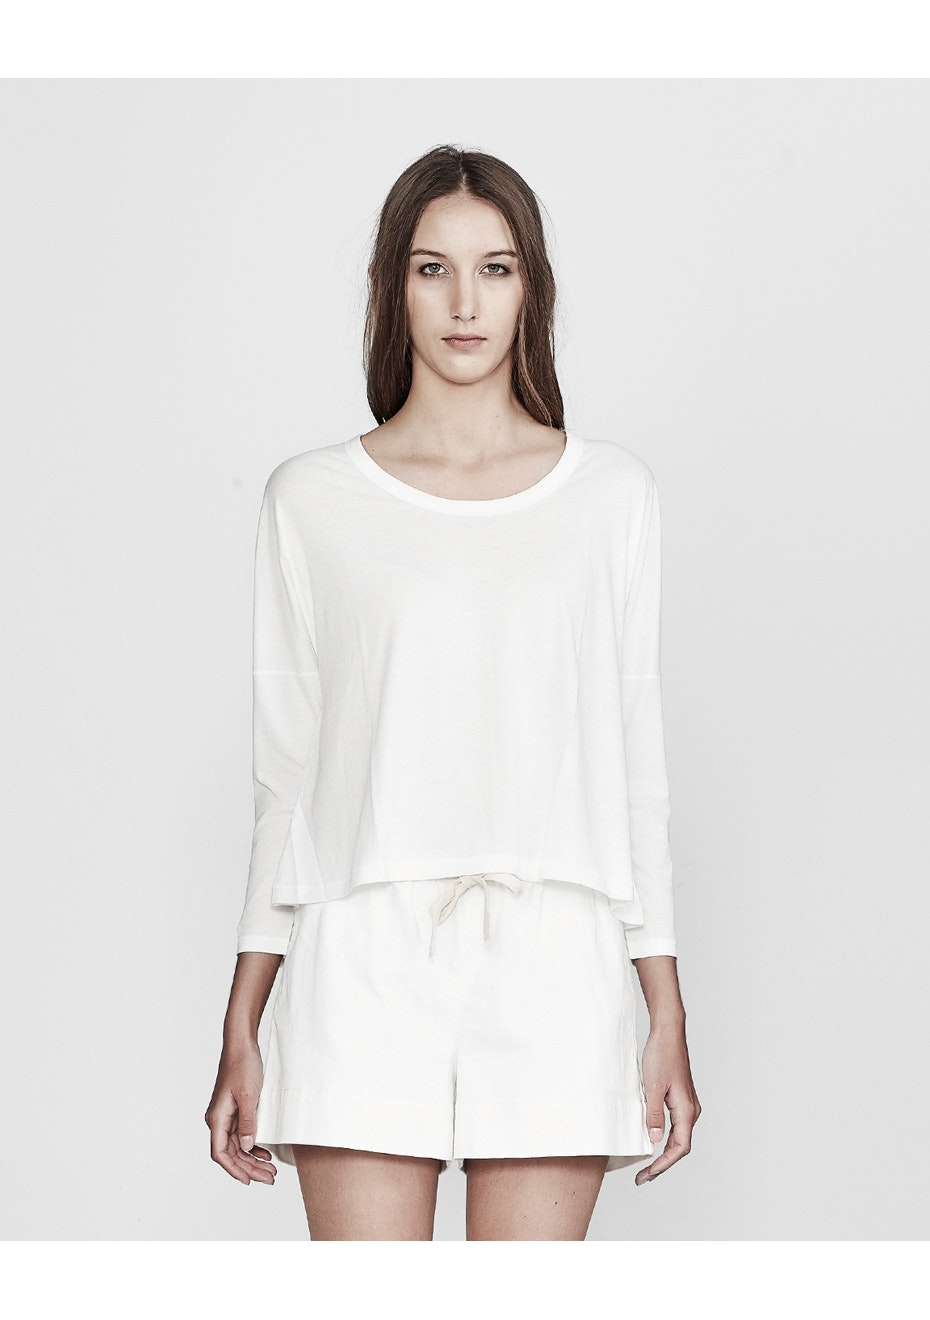 Commoners - Womens Boxy L/S Tee - Used White